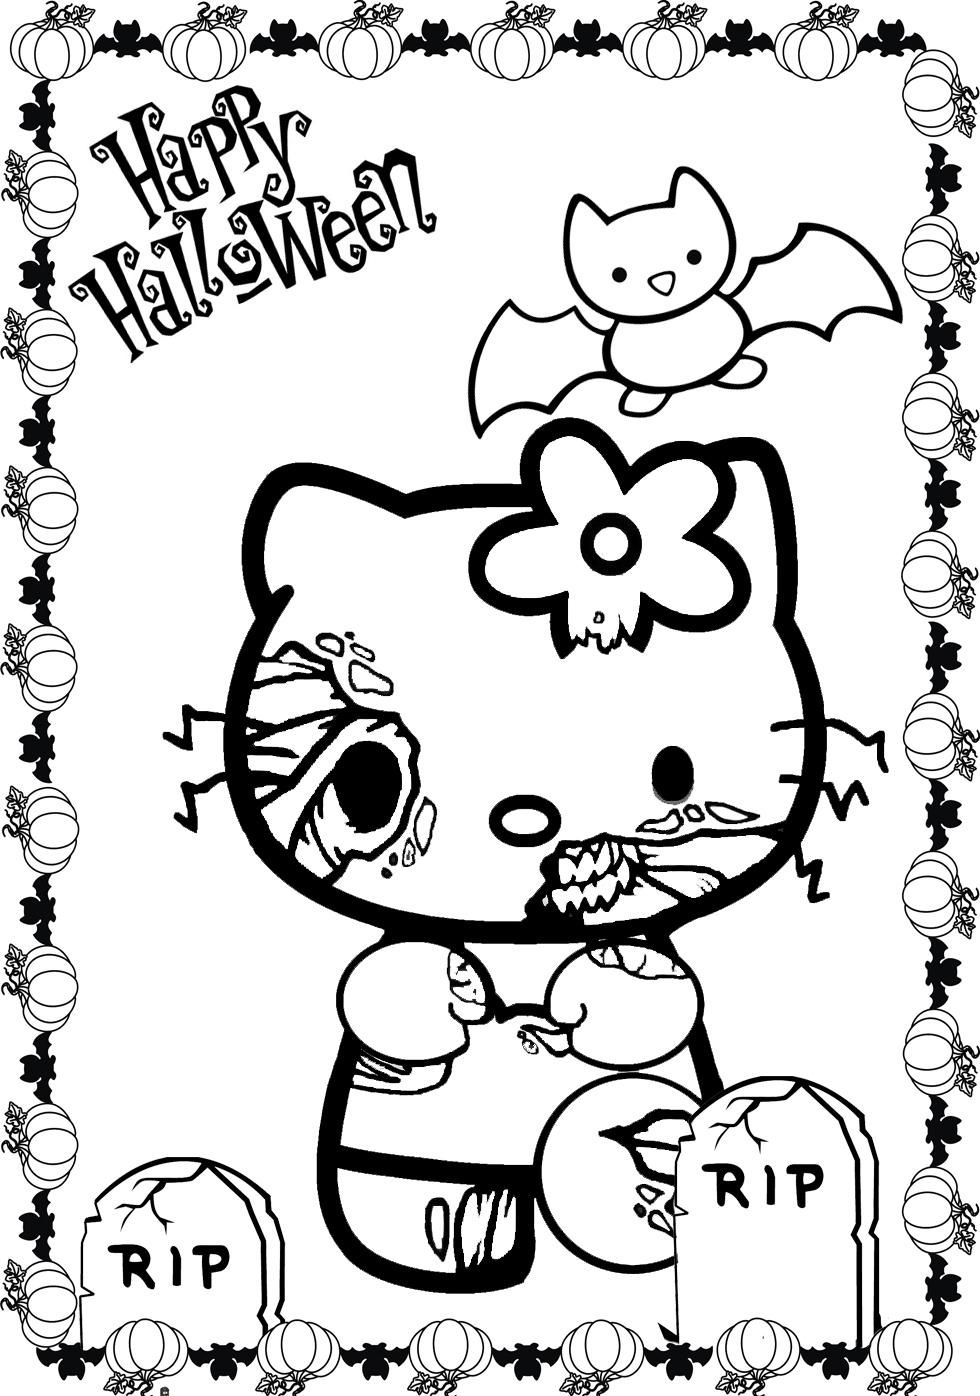 Hello Kitty Halloween Coloring Pages Best Coloring Pages For Kids Hello Kitty Colouring Pages Halloween Coloring Book Hello Kitty Coloring